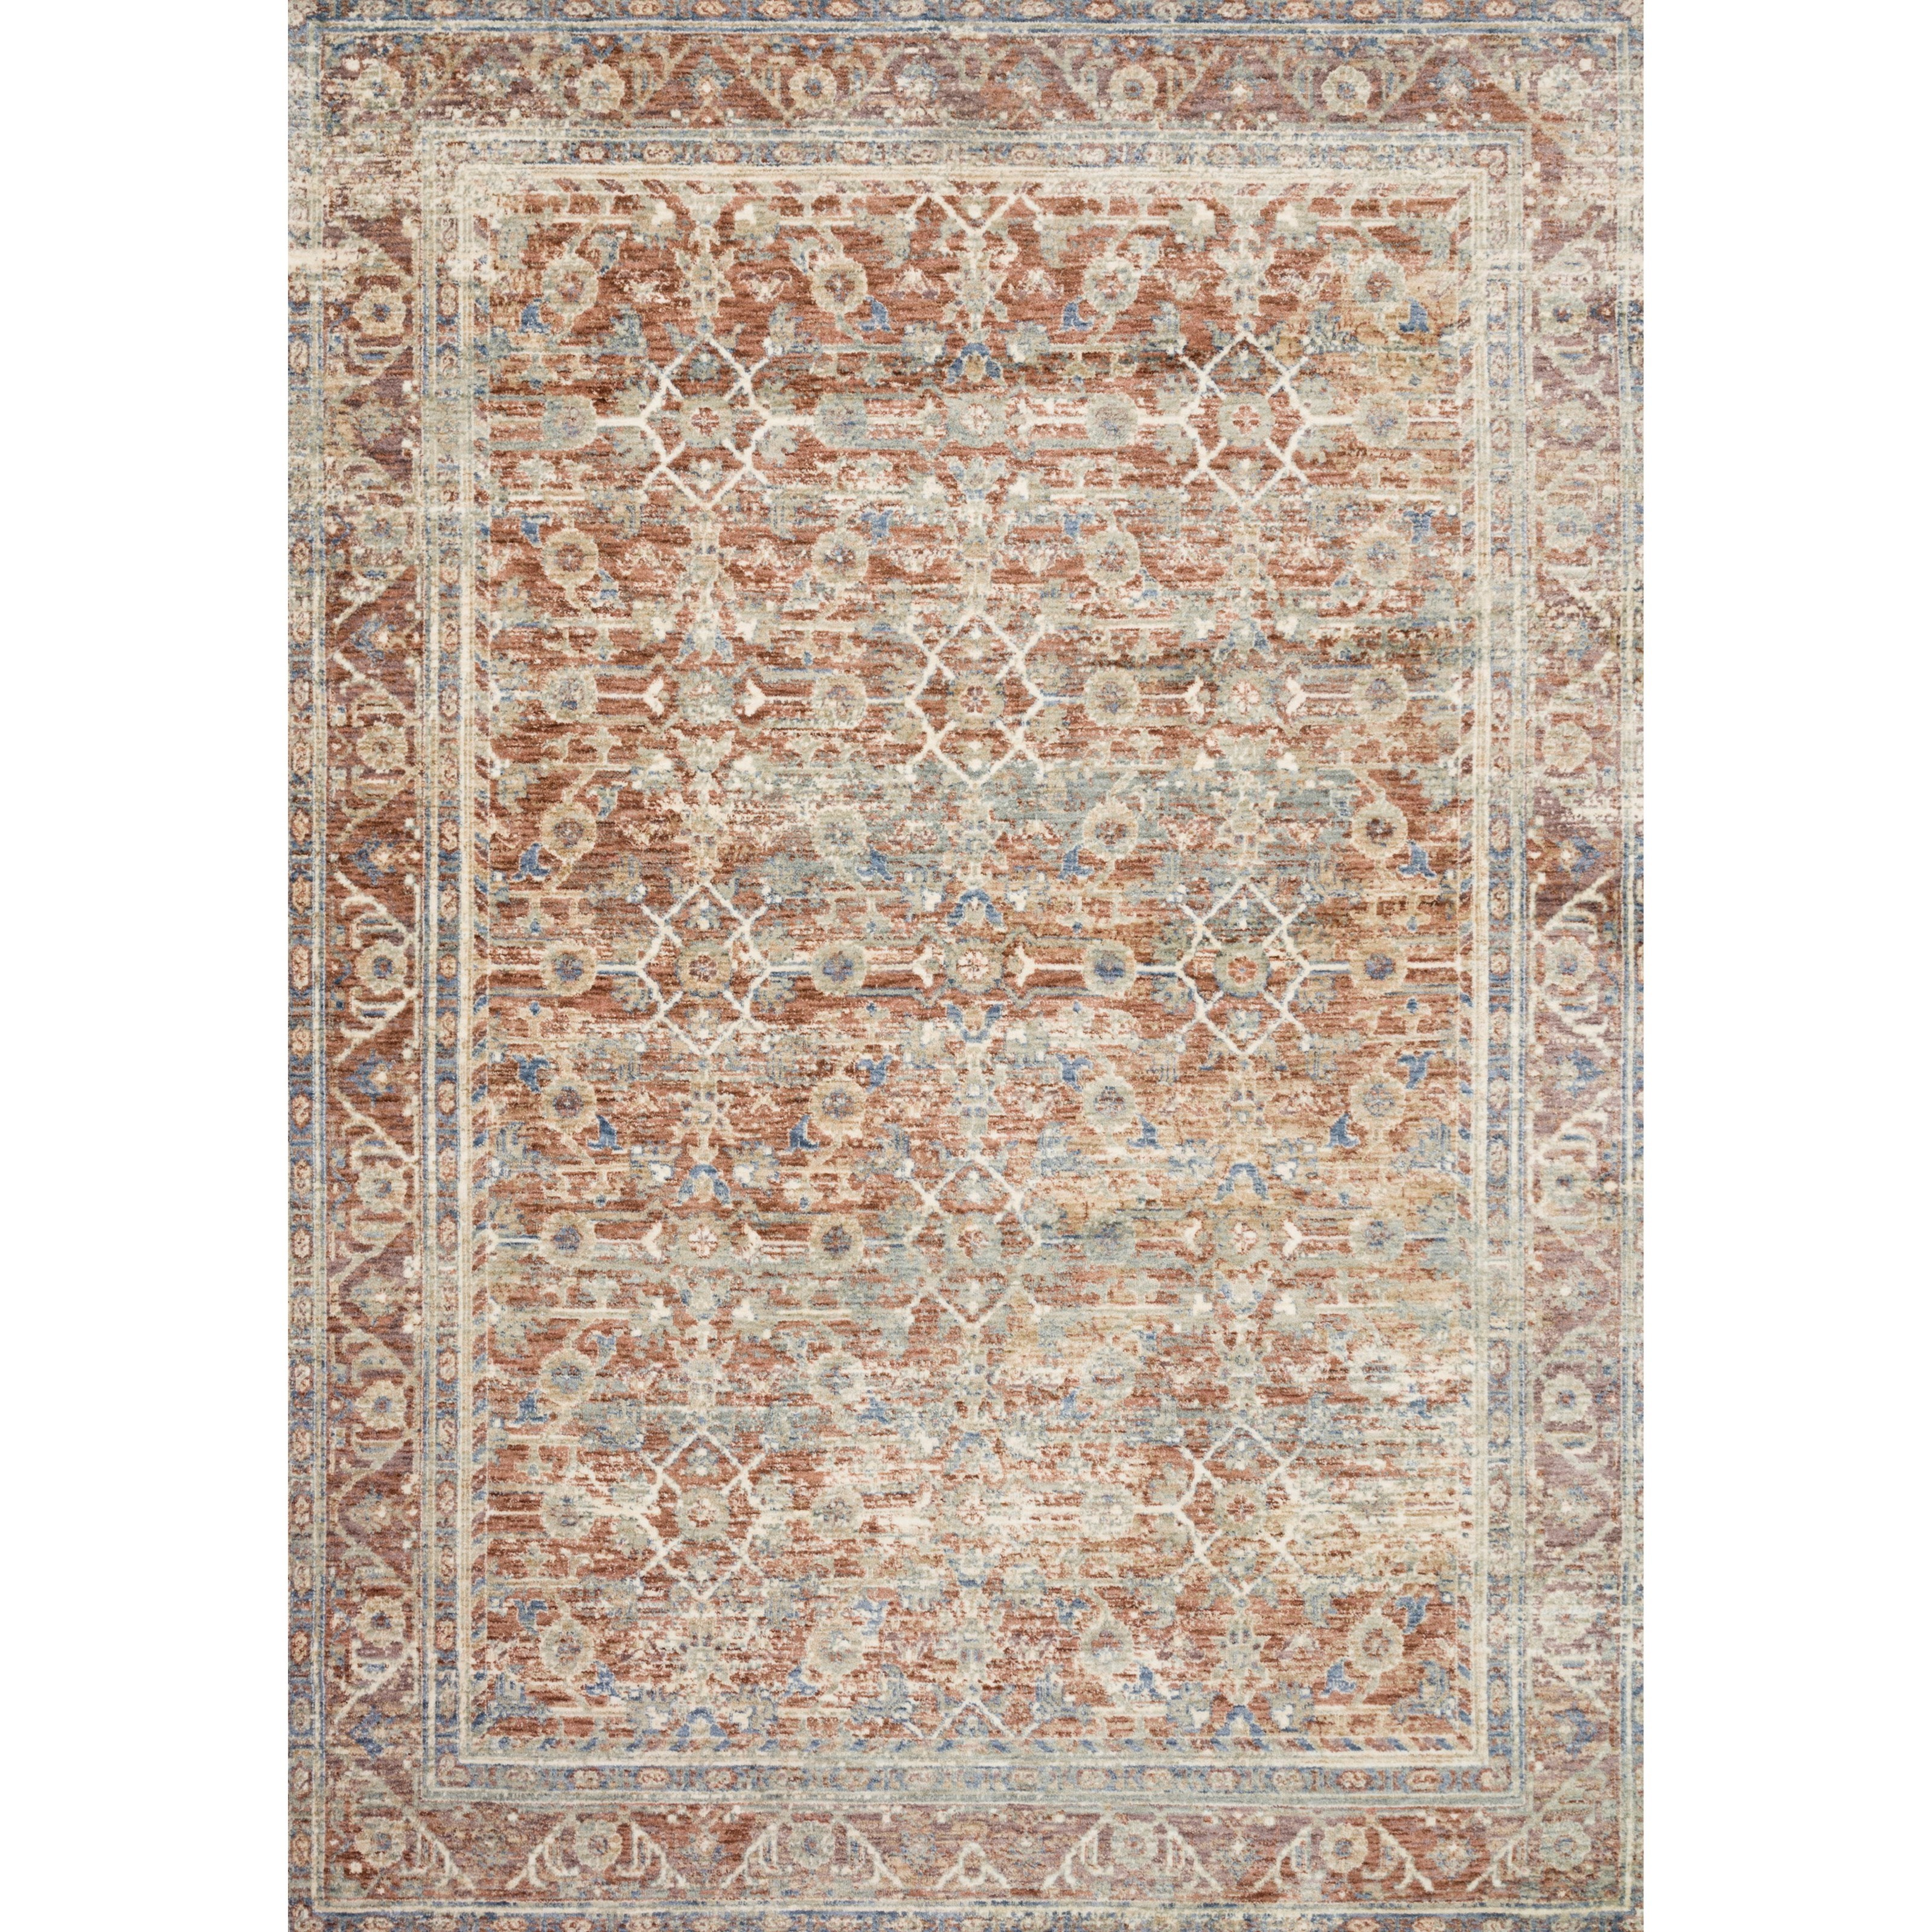 """Revere 1'6"""" x 1'6""""  Terracotta / Multi Rug by Loloi Rugs at Virginia Furniture Market"""